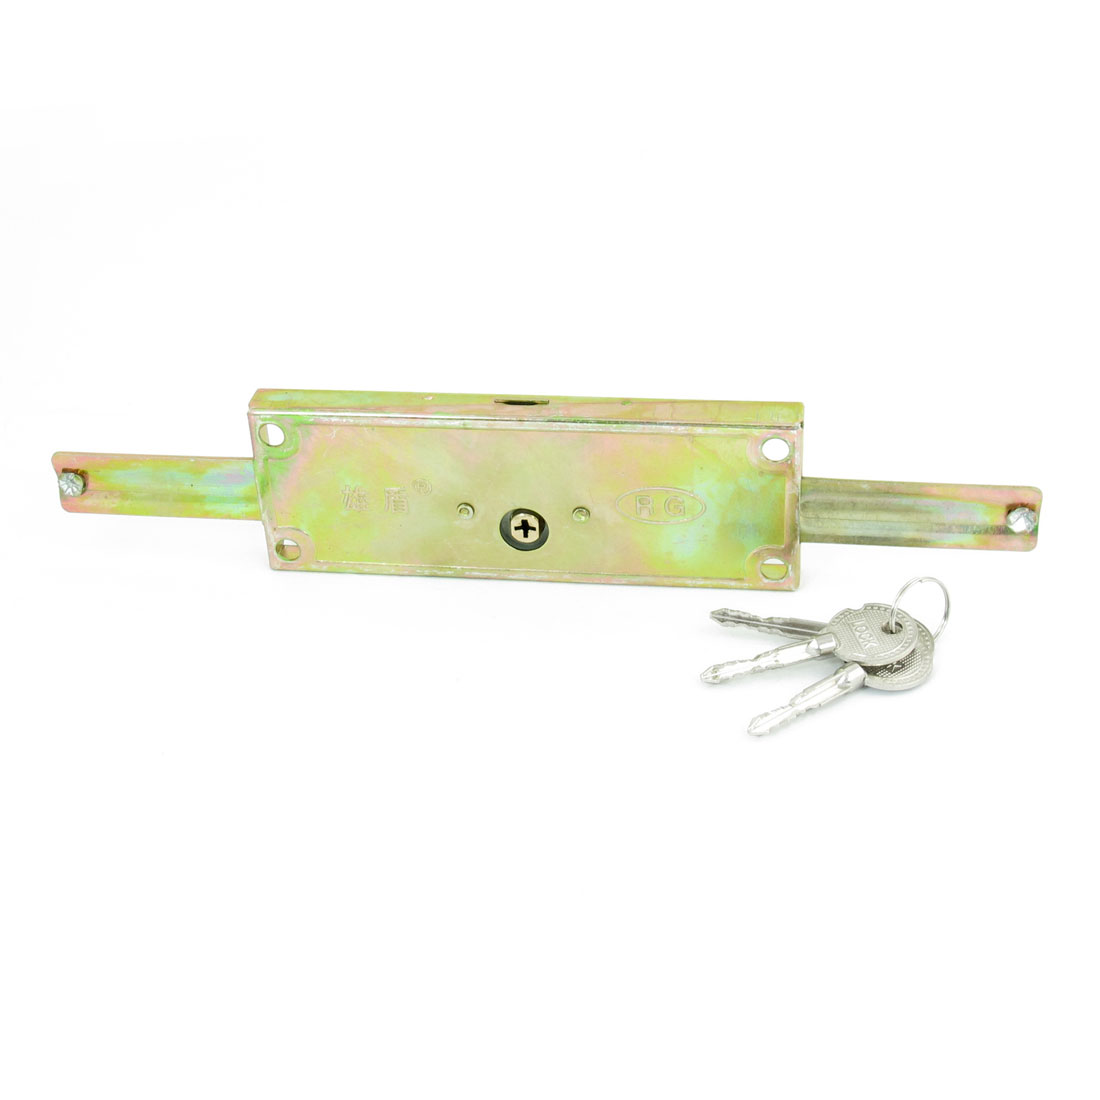 Home Garage Rolling Shutter Door Brass Tone Lock W <font><b>3</b></font> Pcs Cross Key Replacment